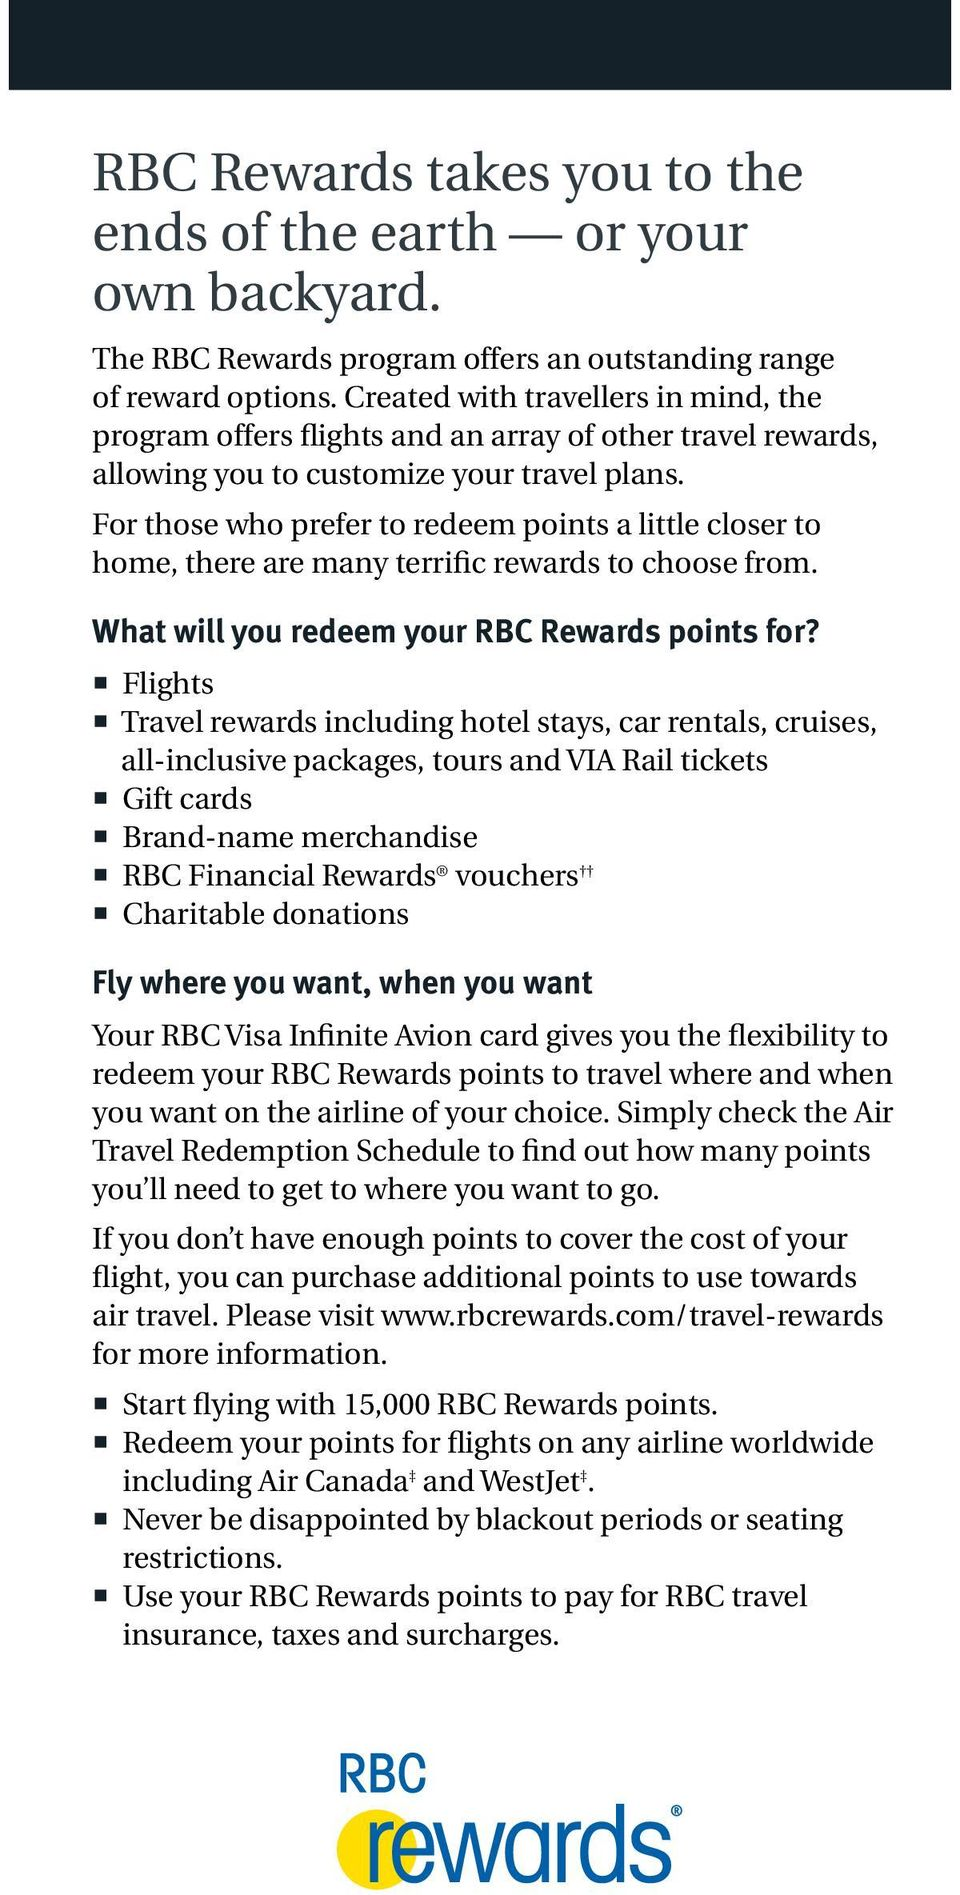 For those who prefer to redeem points a little closer to home, there are many terrific rewards to choose from. What will you redeem your RBC Rewards points for?